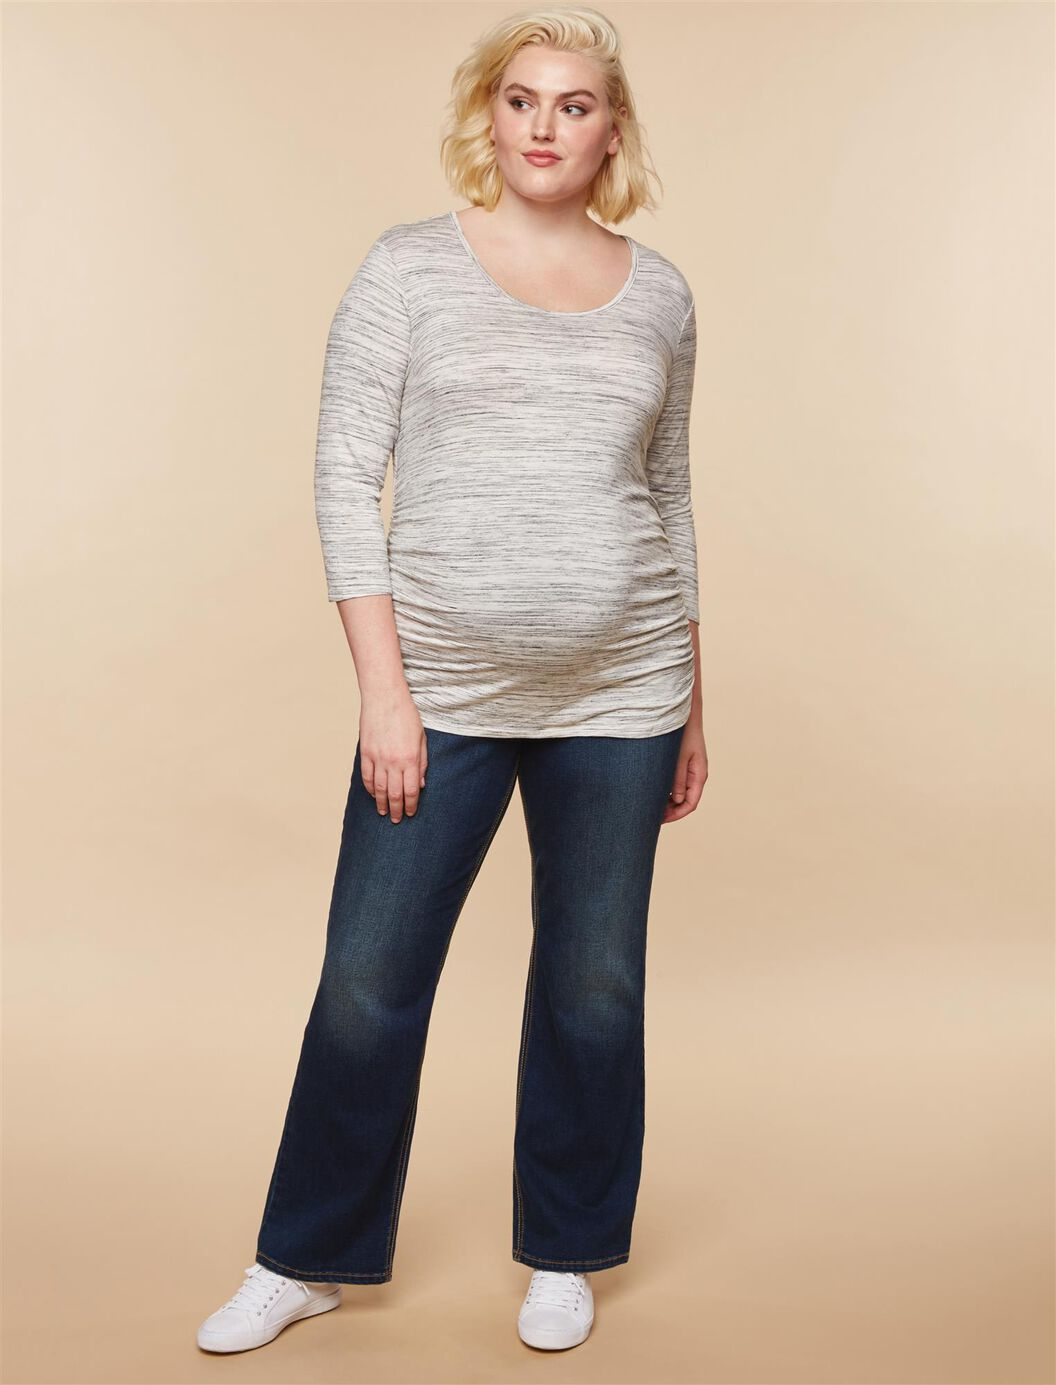 Jessica Simpson Plus Size Secret Fit Belly Dark Boot Maternity Jeans at Motherhood Maternity in Victor, NY | Tuggl